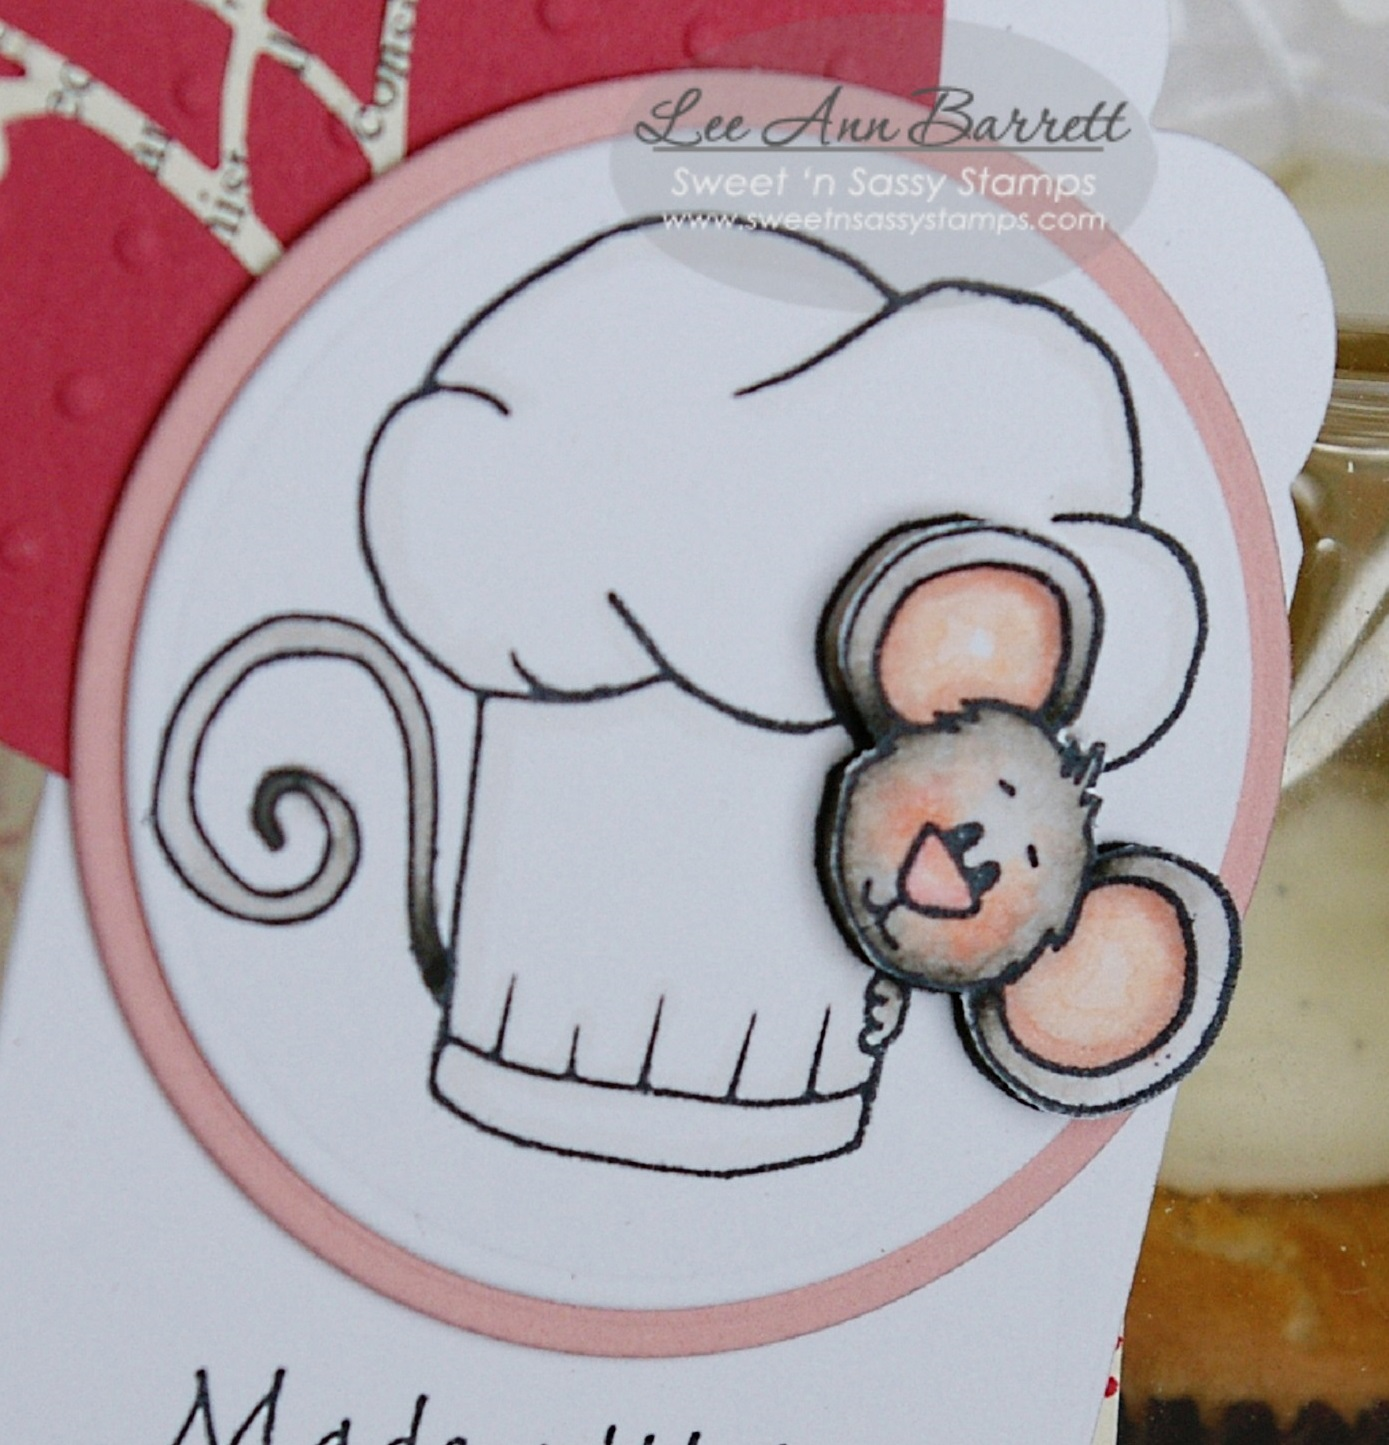 Second Hand Clive Christian Kitchen: Greyt Paper Crafts: New Cocoa And Sweet 'n Sassy Stamps